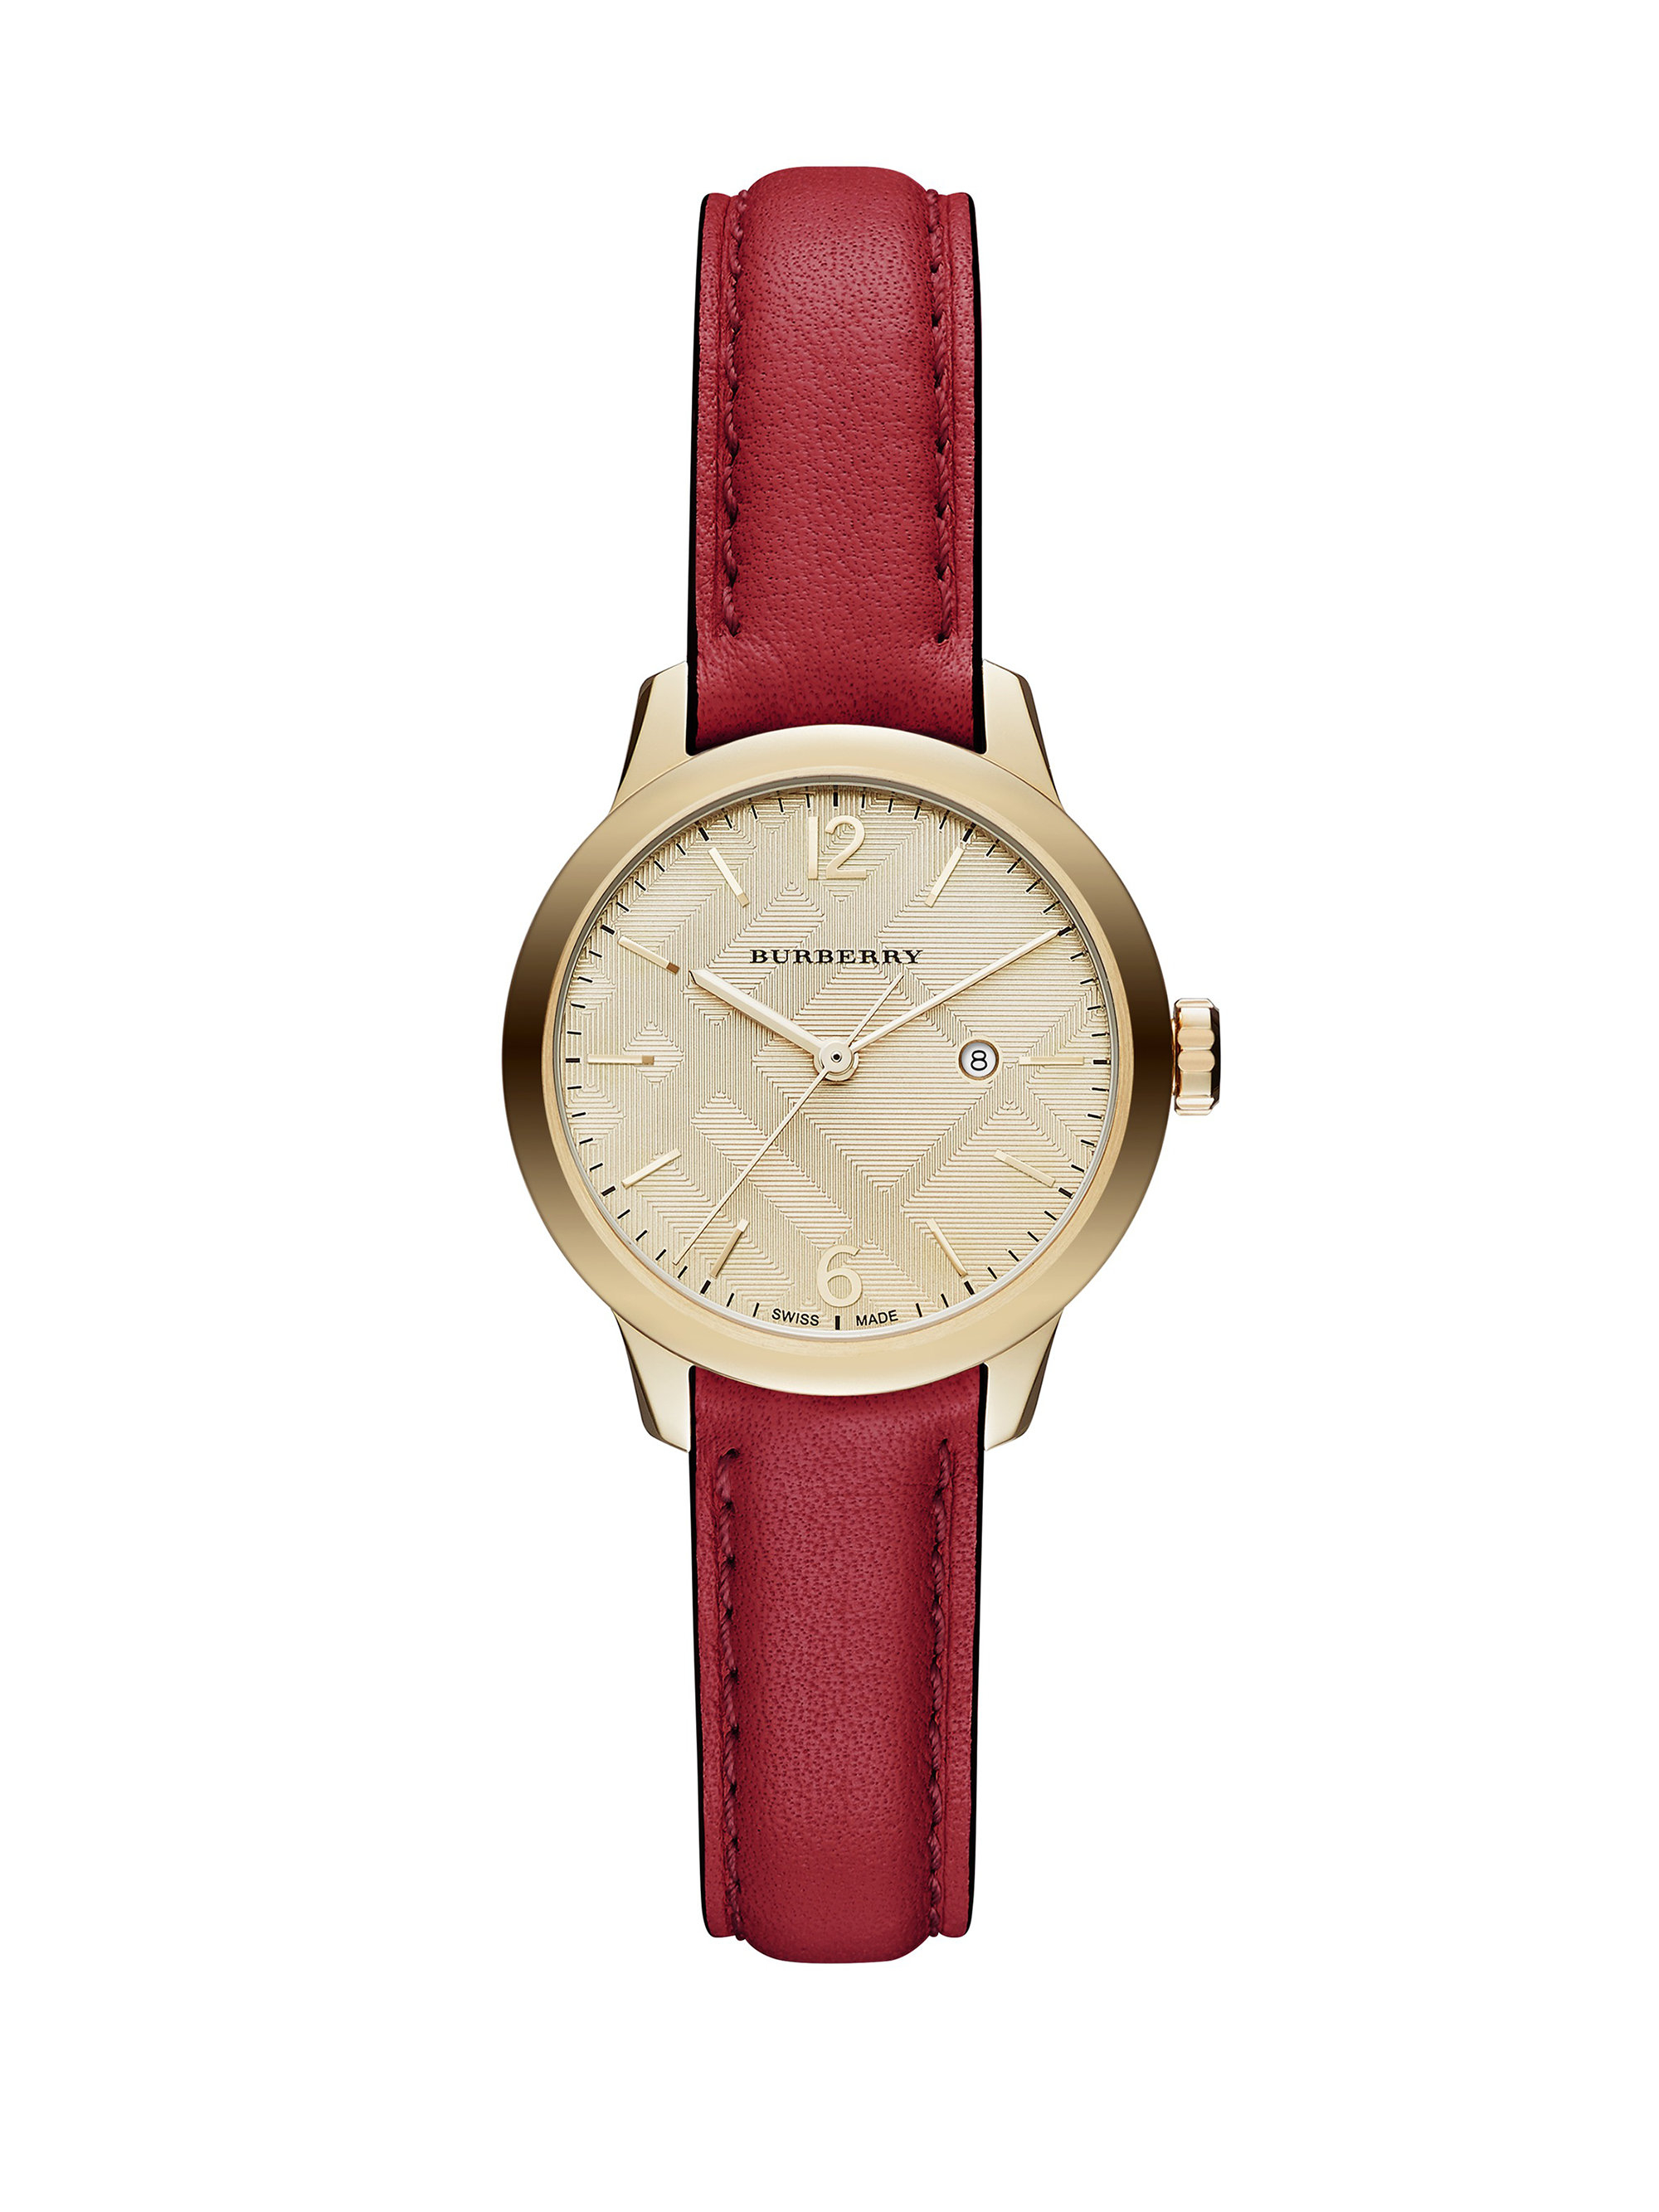 Burberry Goldtone Ip Stainless Steel & Leather Strap Watch. Engraved Lockets. Designer Earrings. Green Necklace. Tricolor Bangles. Walnut Rings. Mens Suit Brooch. Cartier Bangles. Unique Silver Jewellery